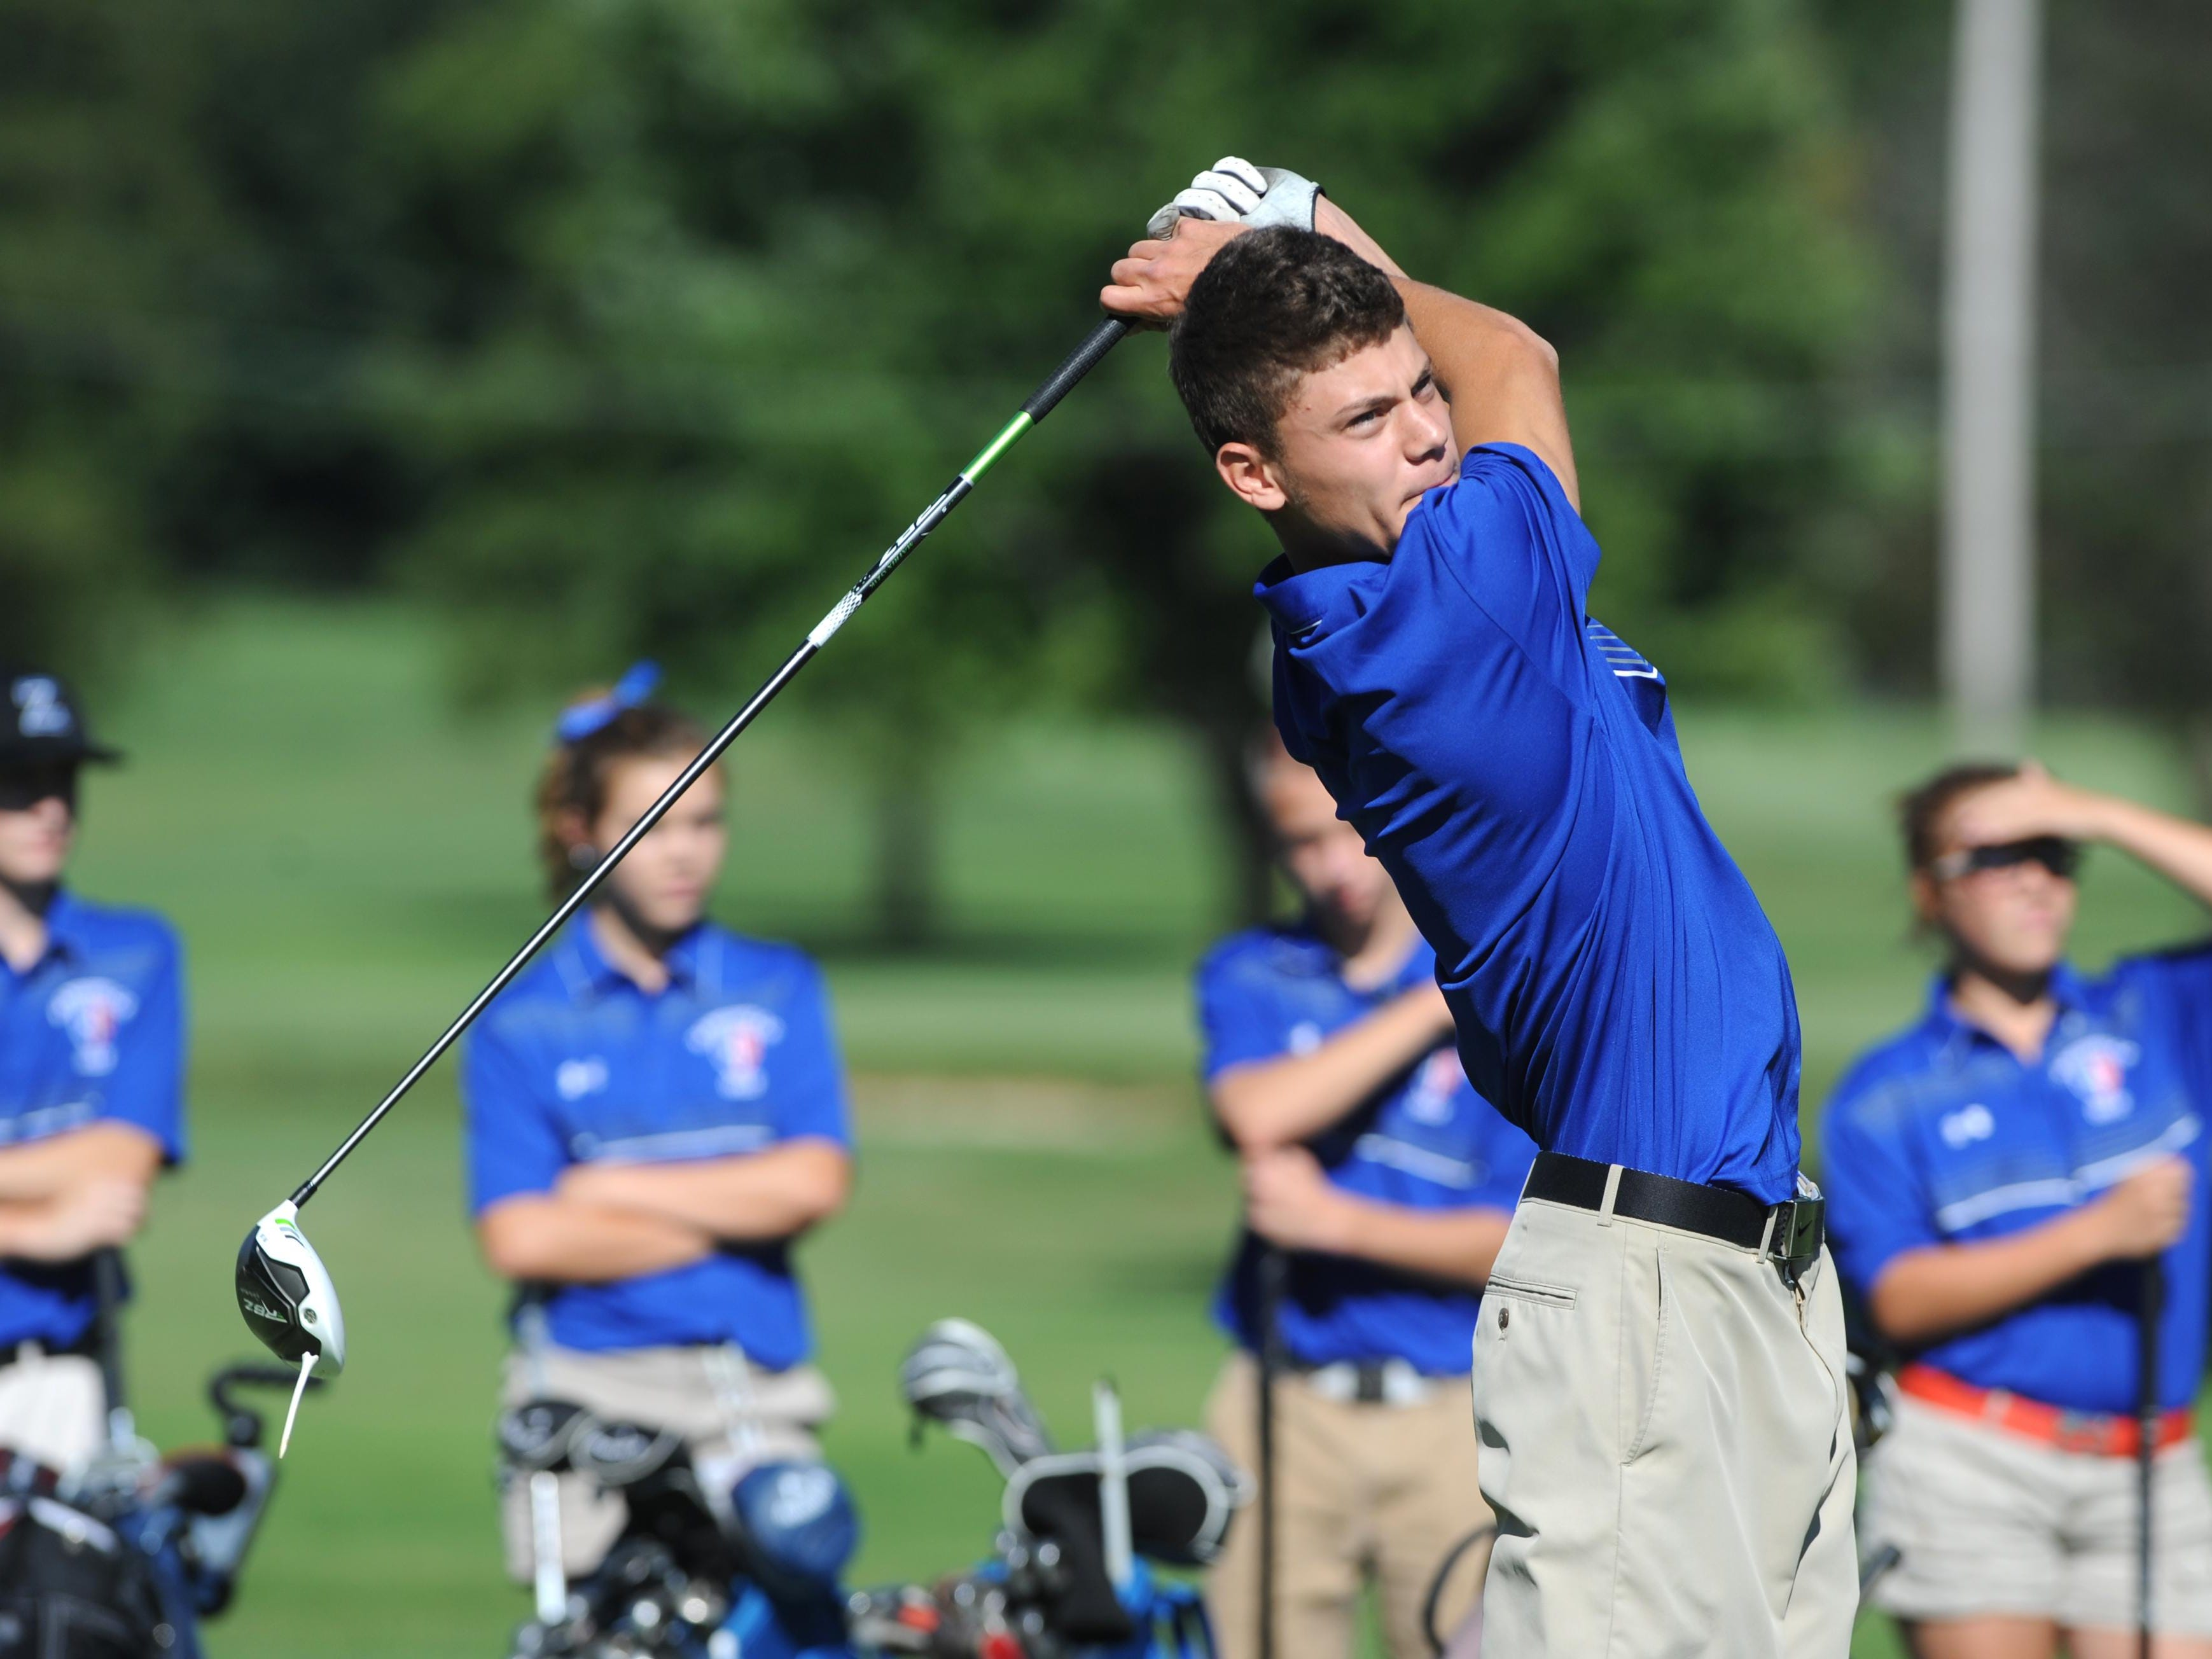 Zanesville's J.J. Burns tees off during the Michele Redman Cup at Zanesville Country Club on Monday.